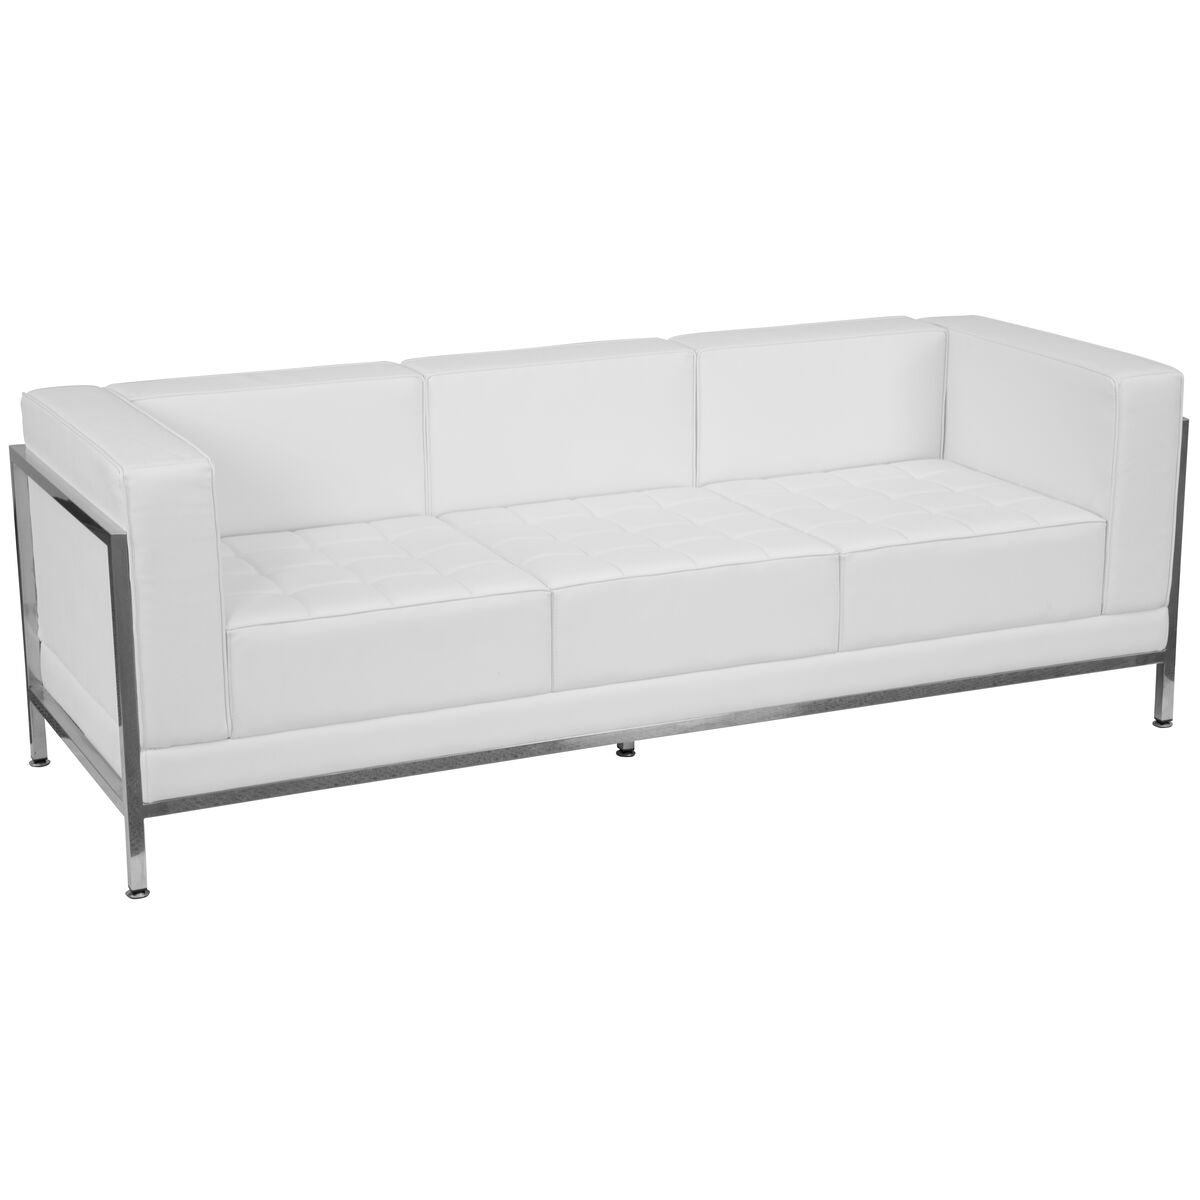 Flash furniture hercules imagination series contemporary for White contemporary chair